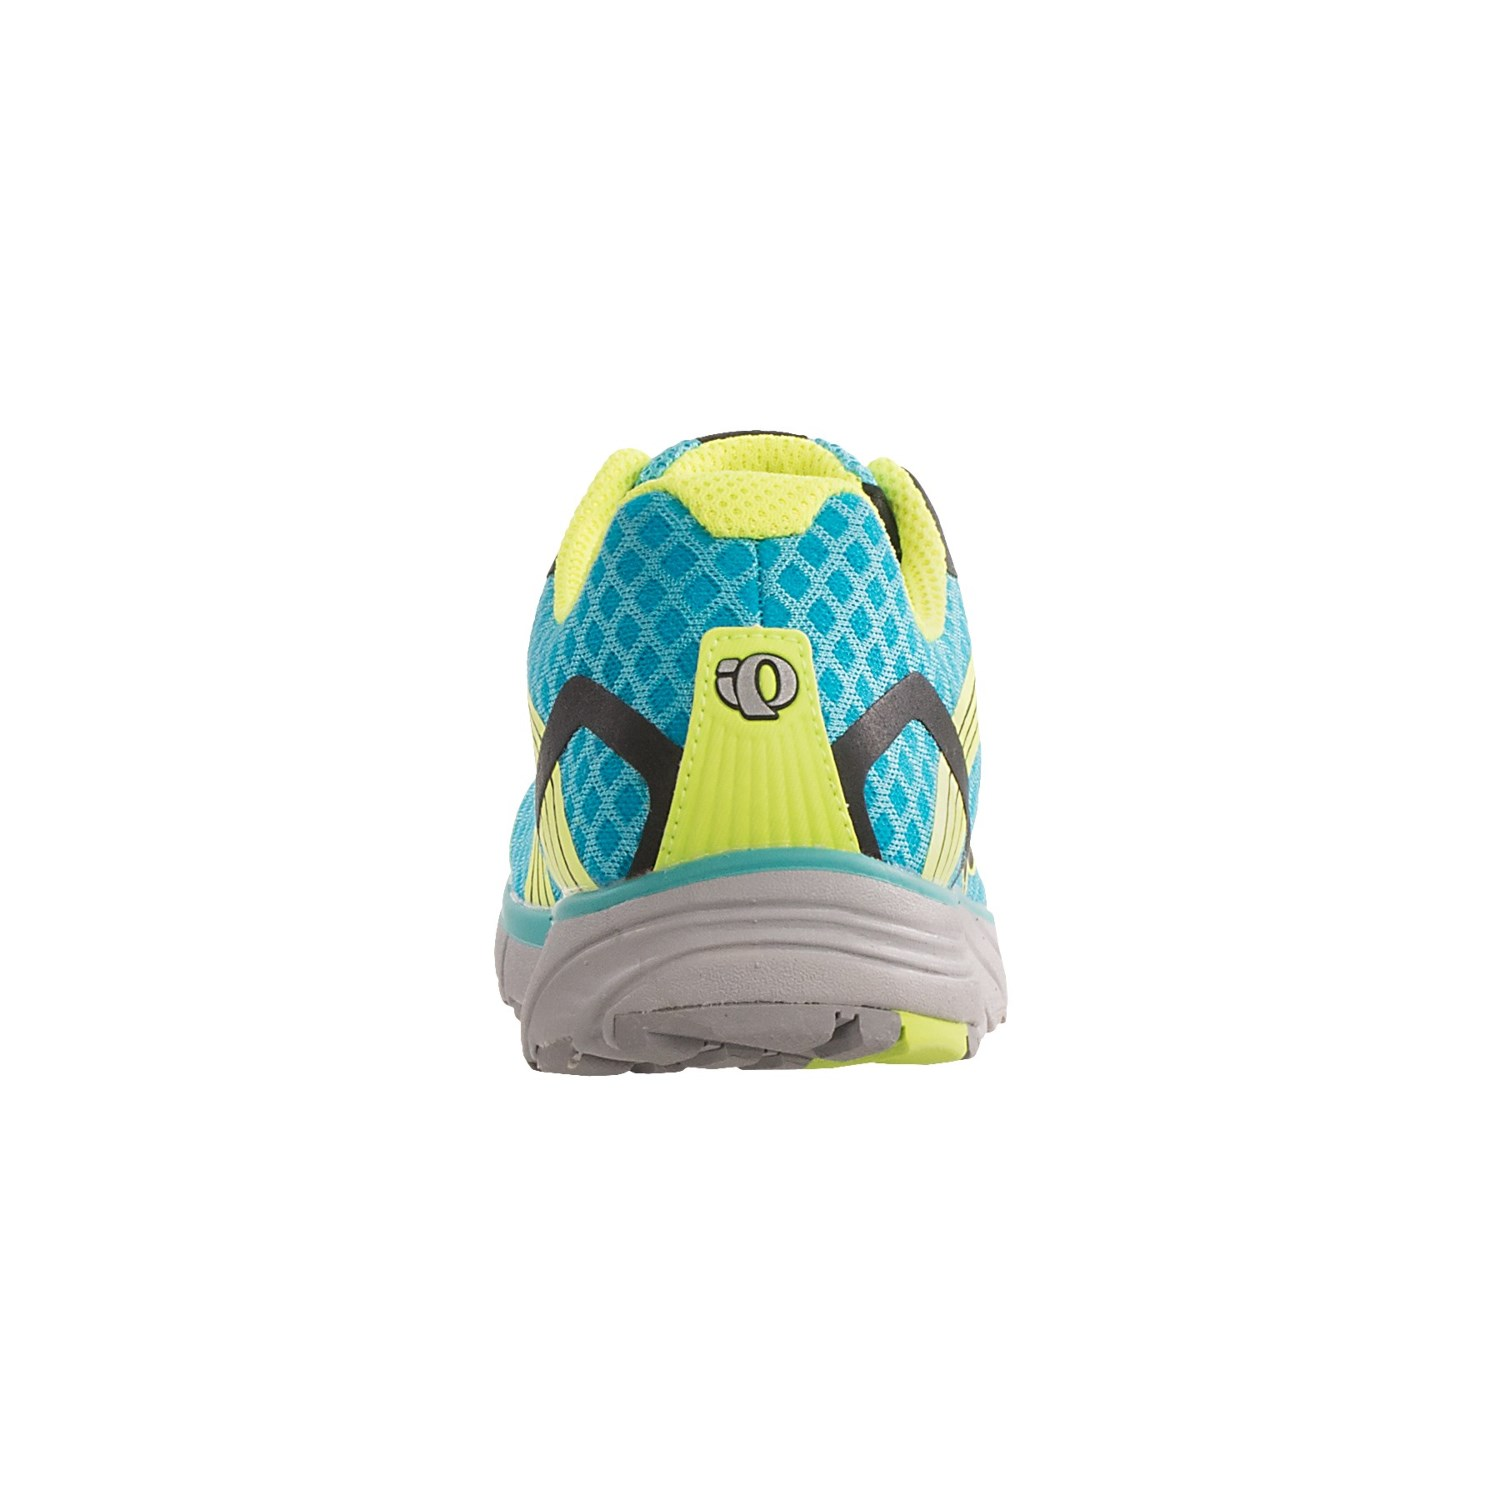 Pearl Izumi Em Road H Running Shoes Review